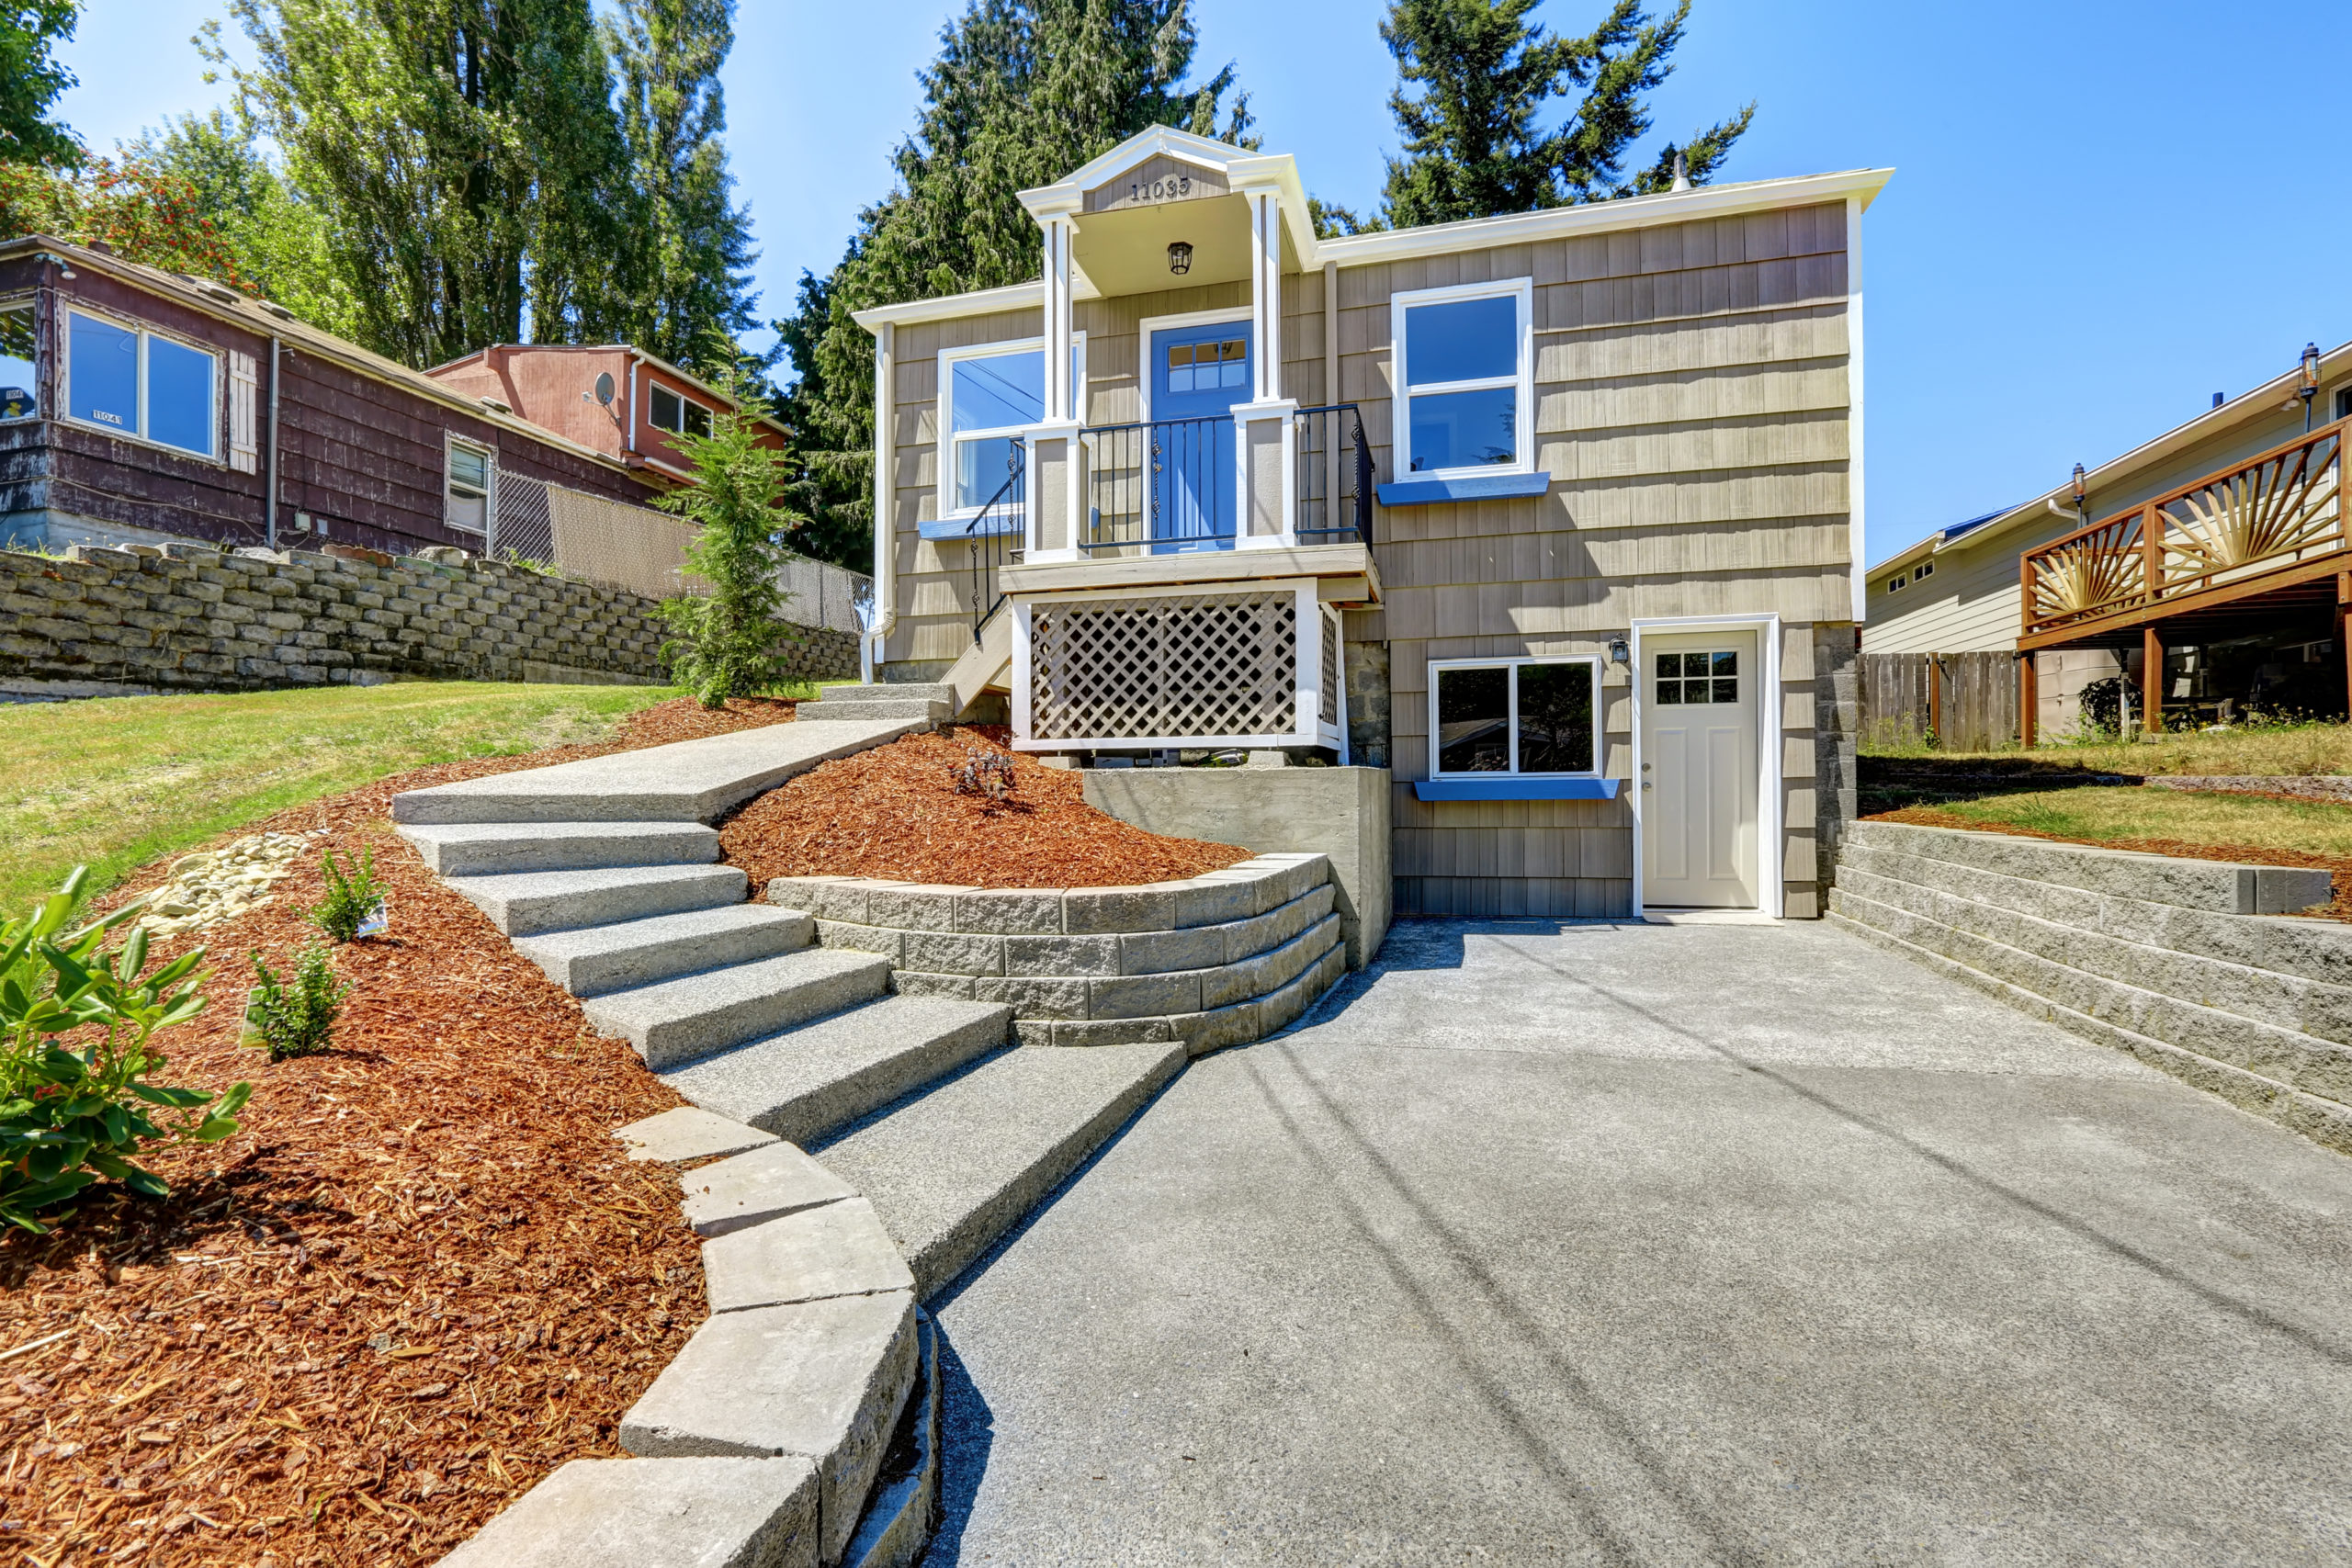 This is an image of a residential property with a concrete driveway and stairs.